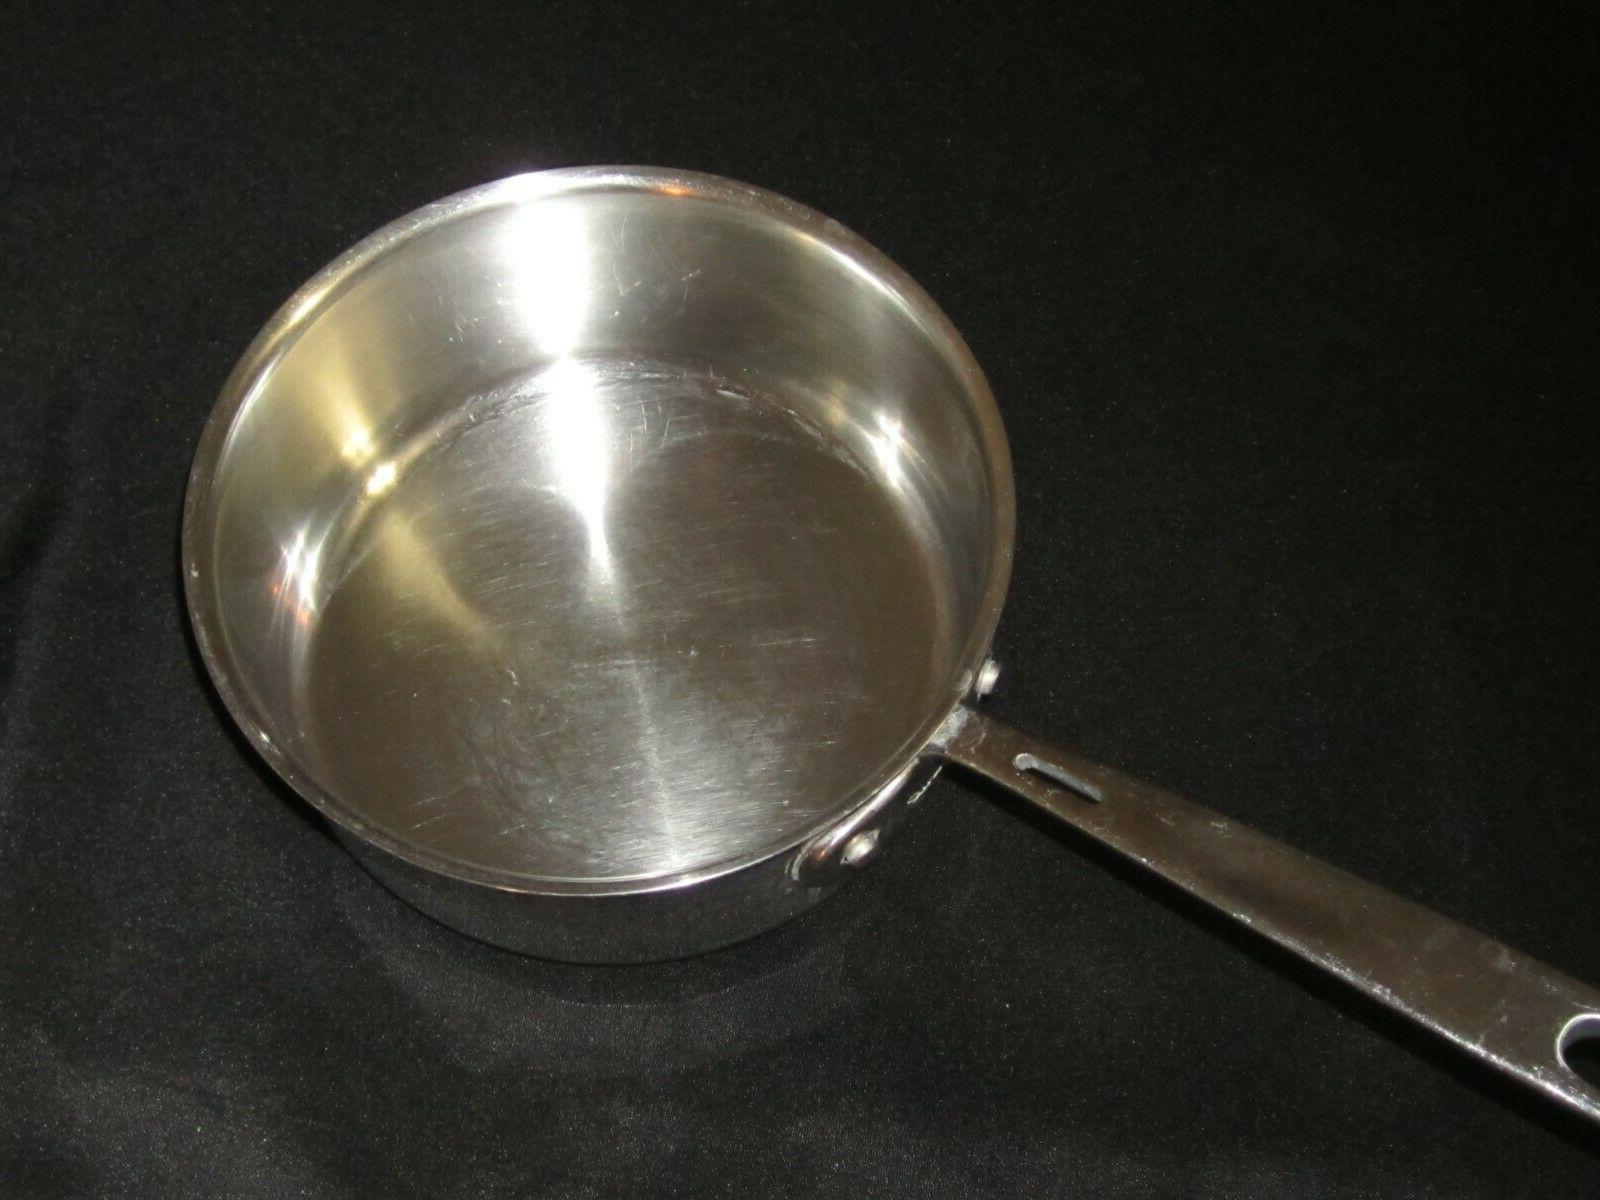 copper core stainless steel 2 quart sauce